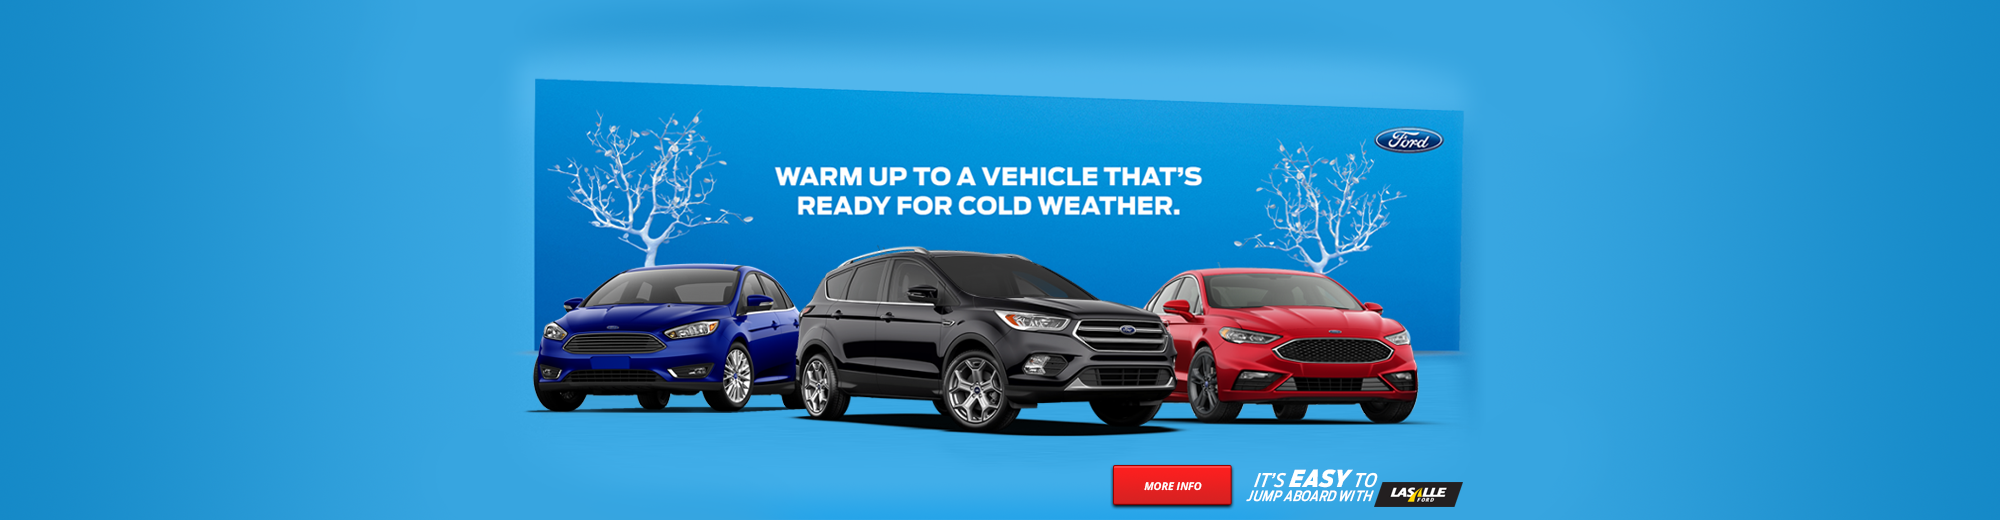 Warm up to a vehicle that's ready for cold weather